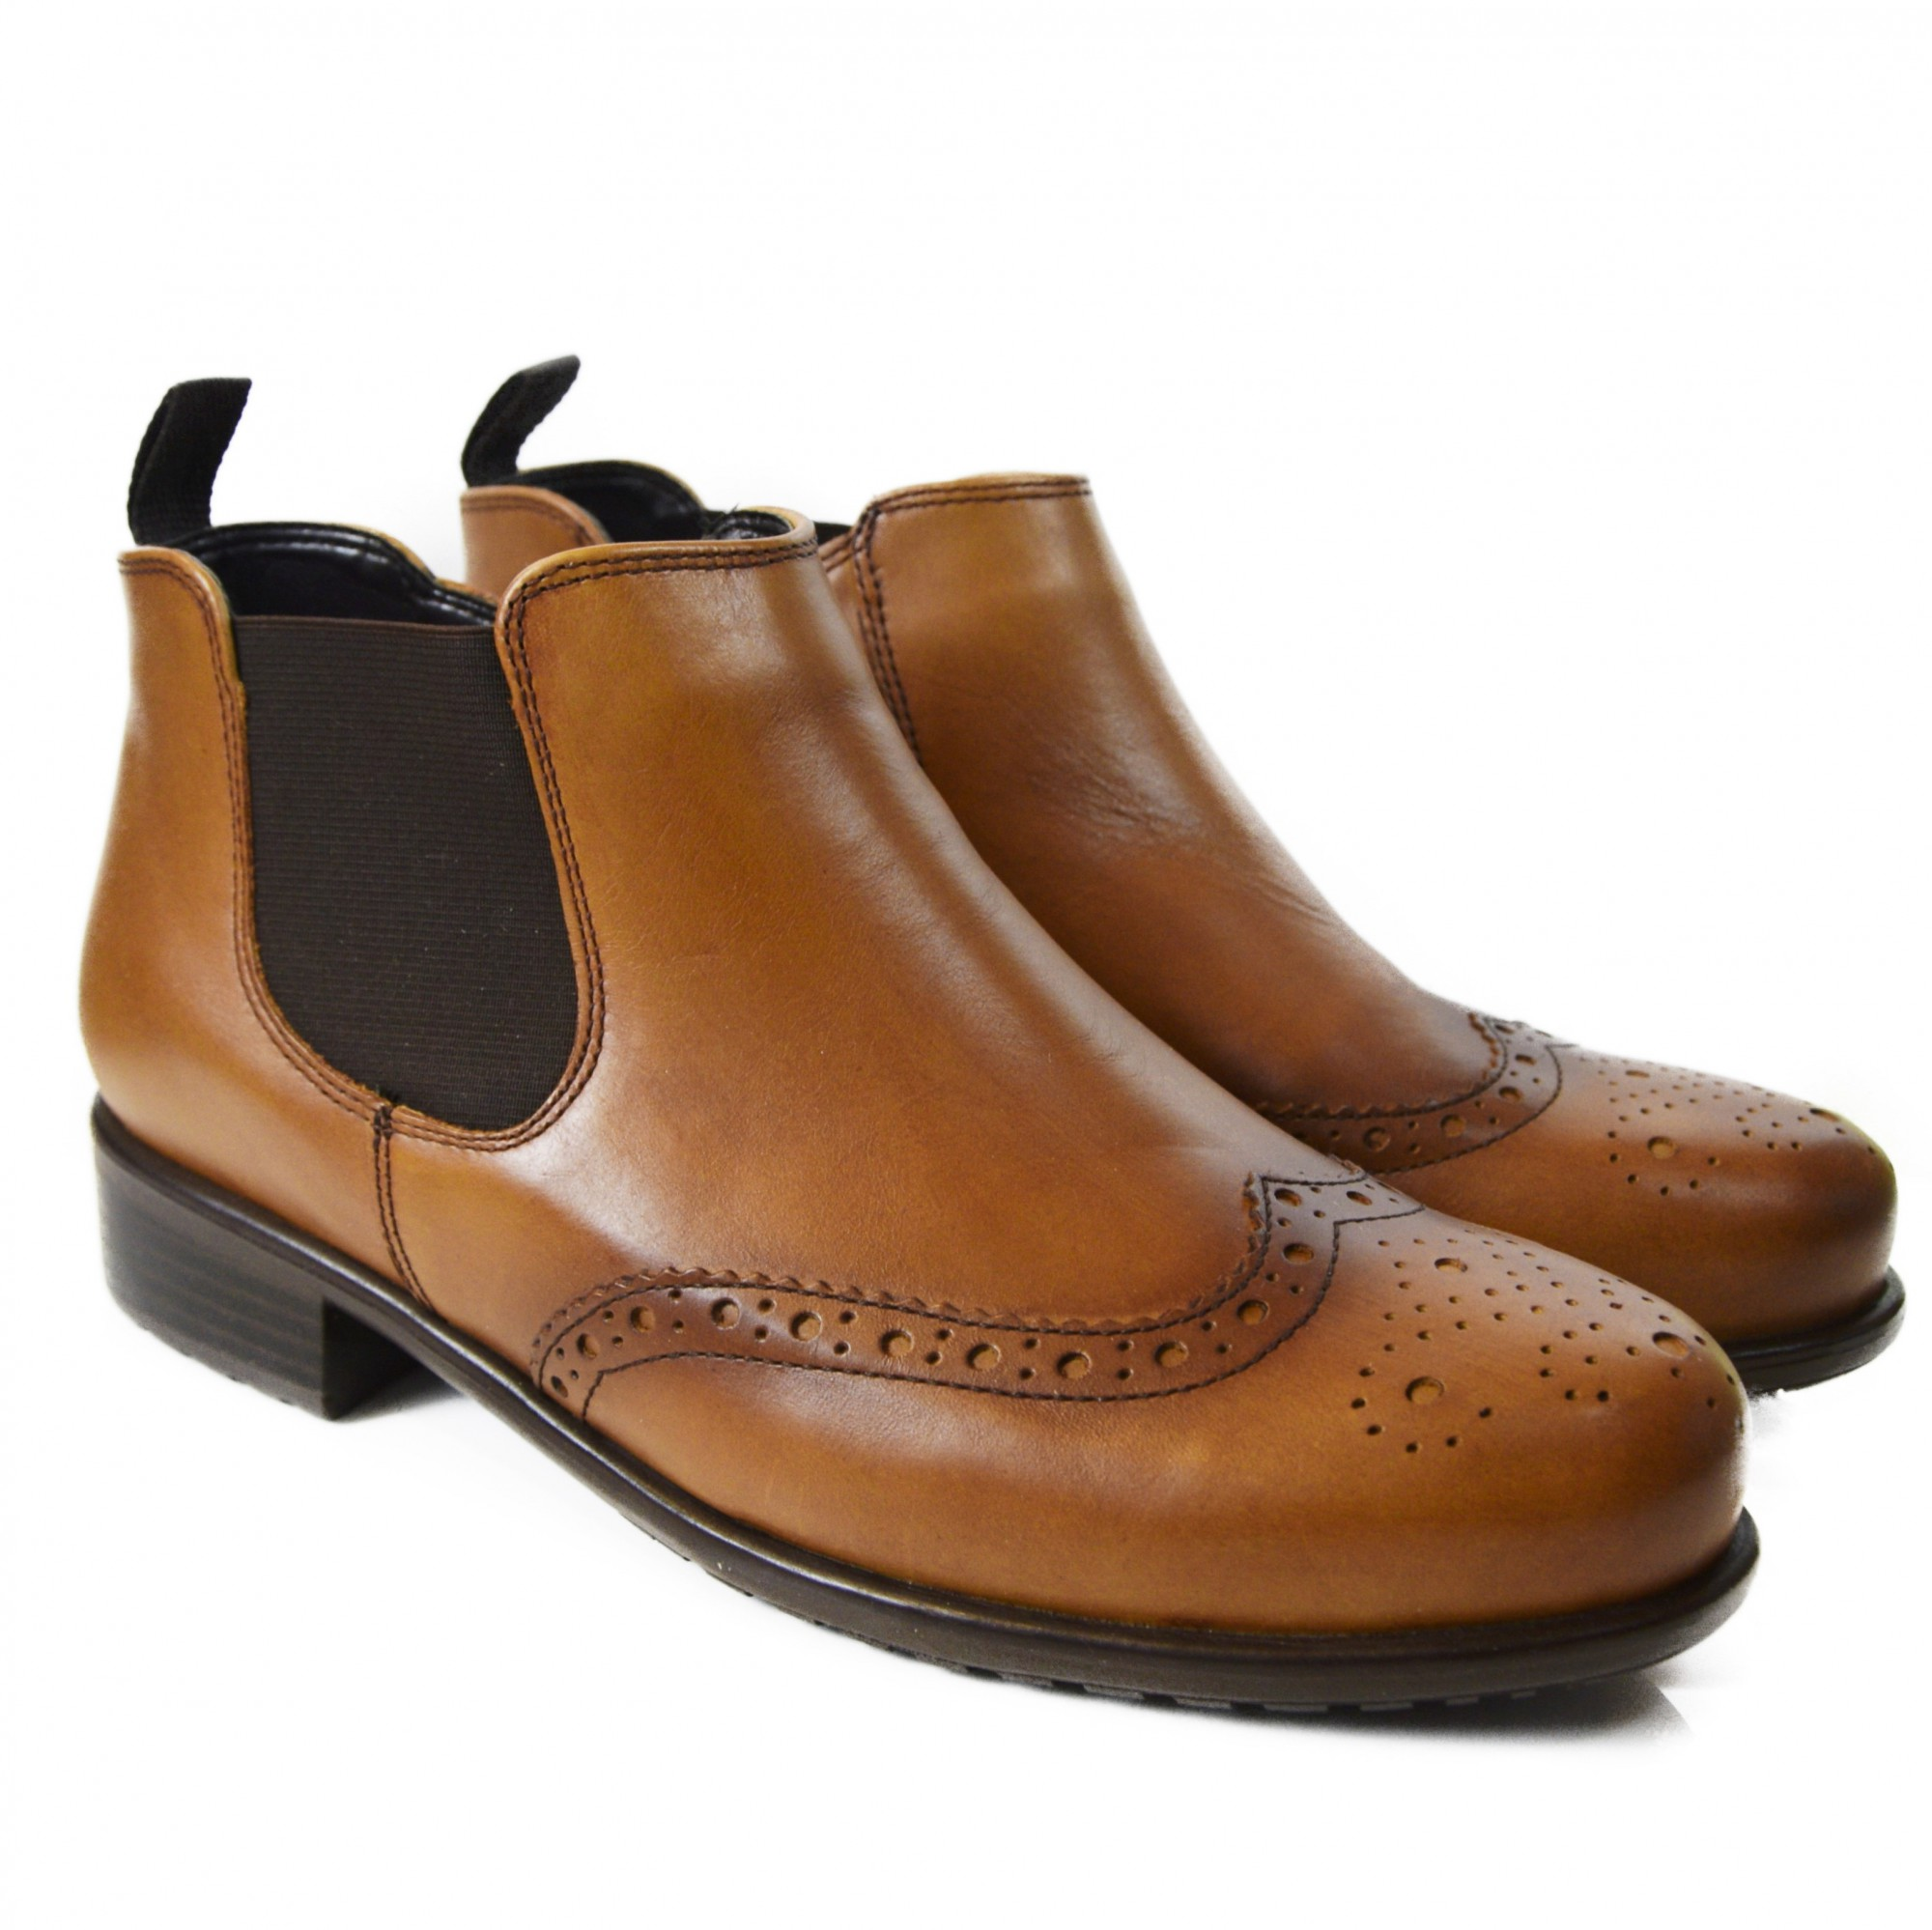 ARA WOMEN BOOT WITH ZIP LIVERPOOL BROWN LEATHER | Woman Shoes and ...